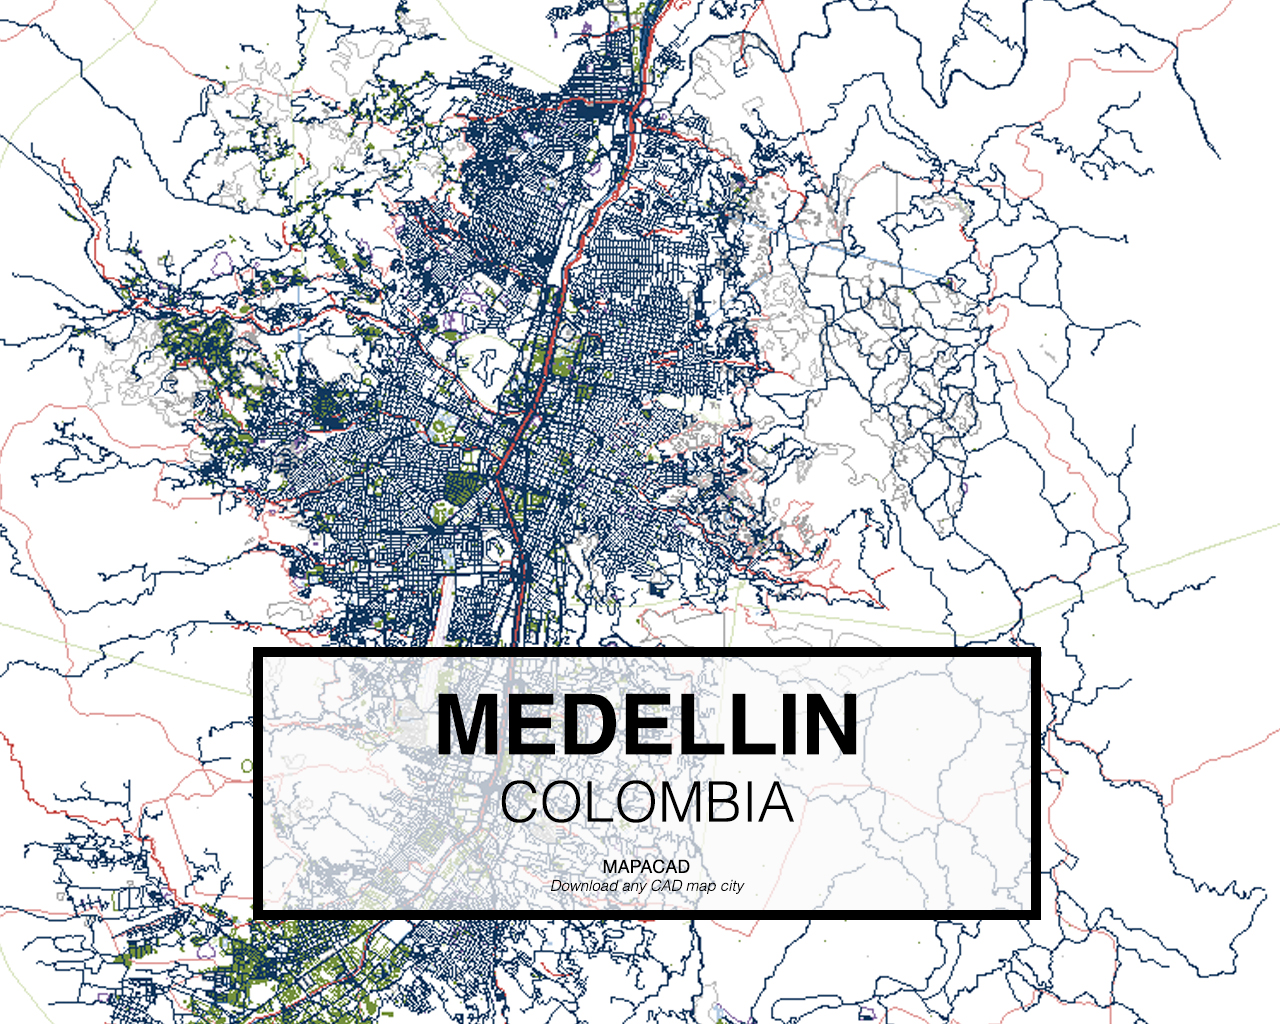 Medellin medellin colombia 01 mapacad download map cad dwg gumiabroncs Images